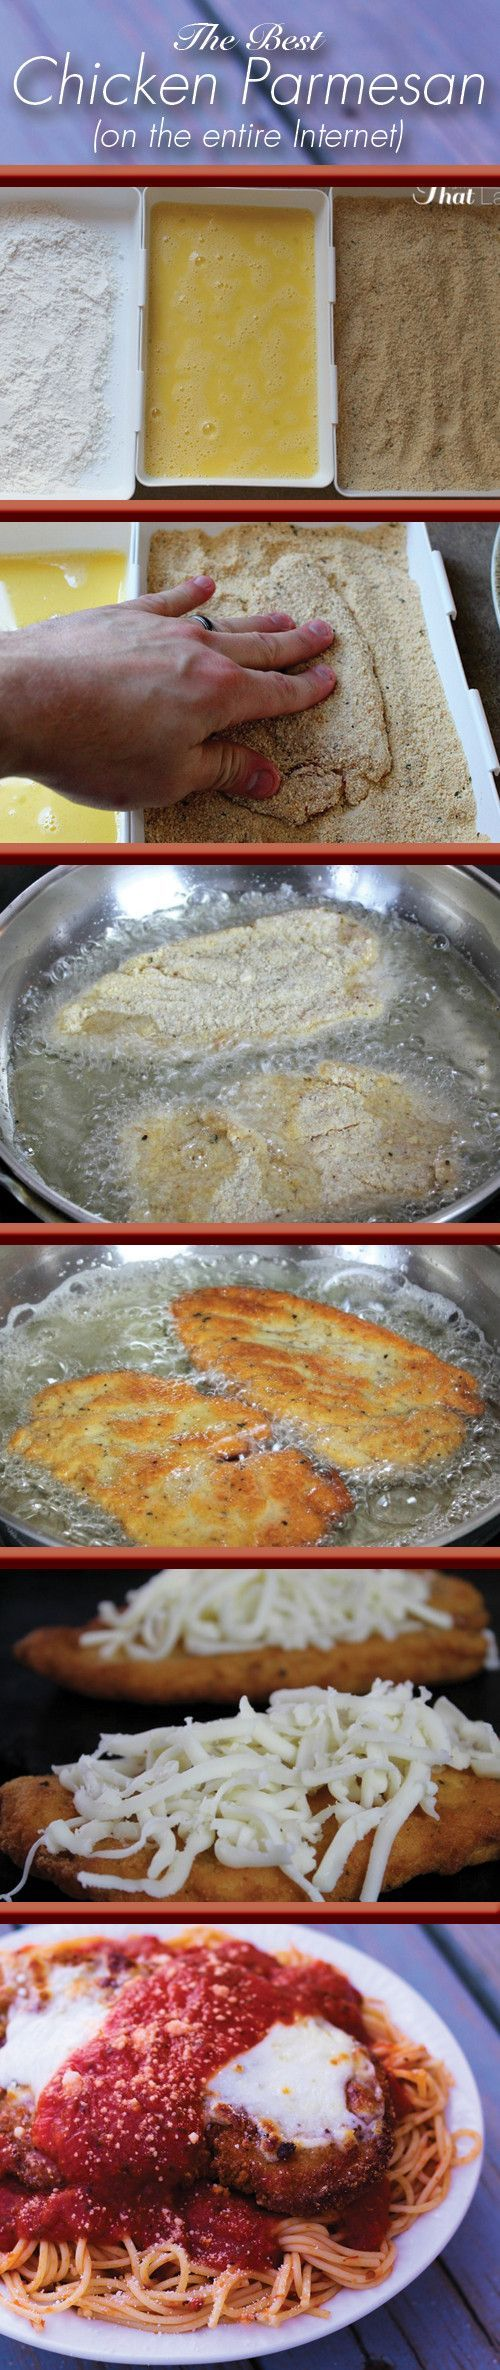 This Is The Best Restaurant Quality Chicken Parmesan Recipe Ever It S Been Perfected Over The